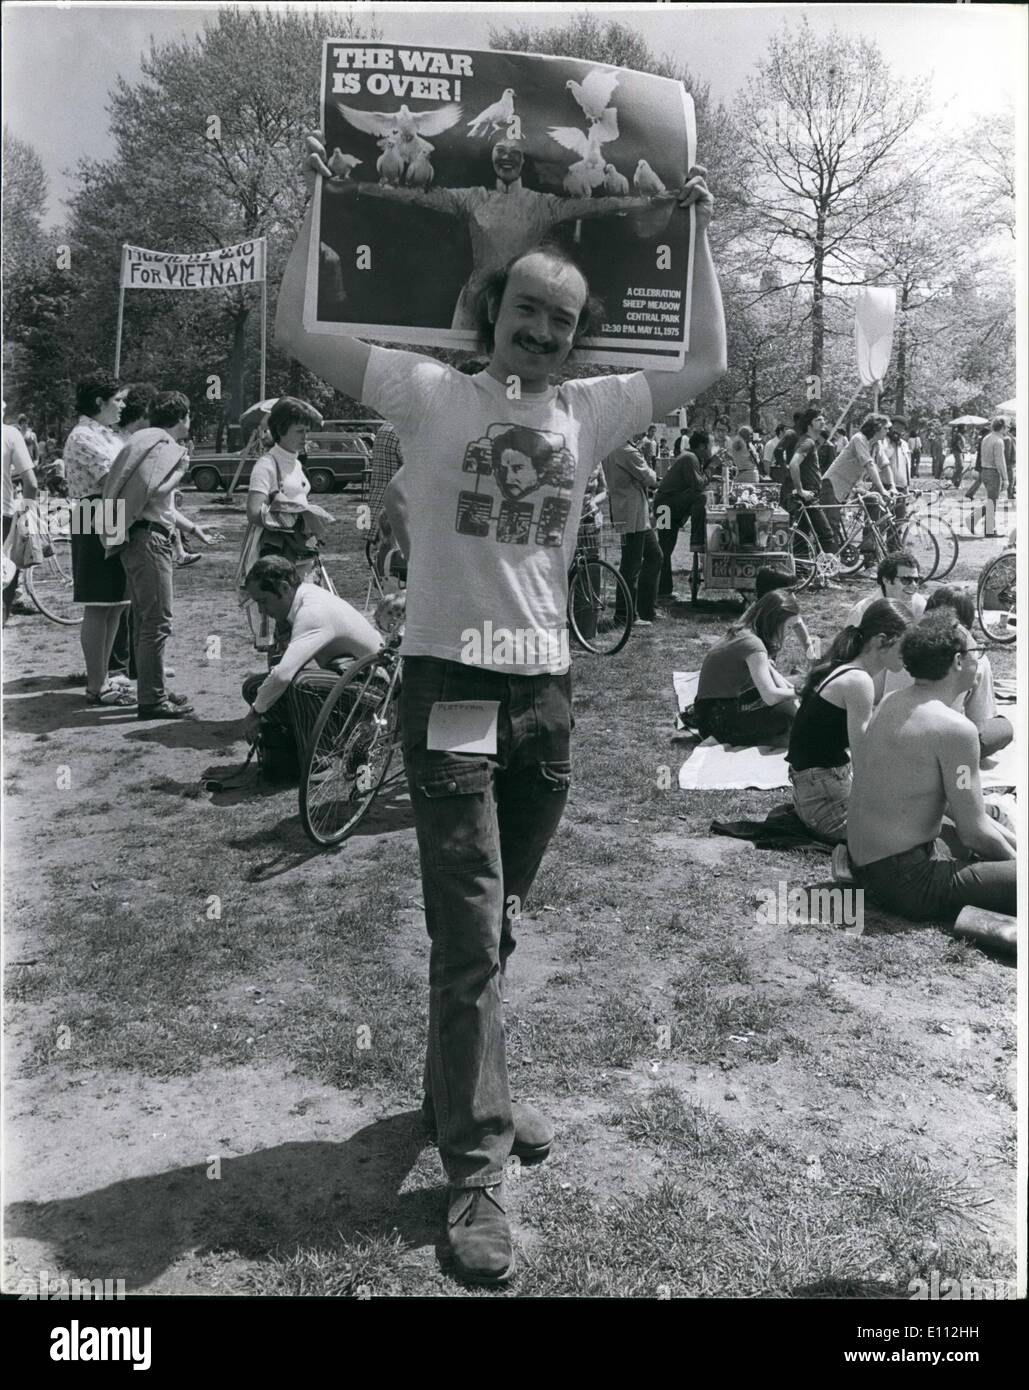 May 05, 1975 - War is over rally: Vietnam is over. That was the theme as thousands jammed Sheep Meadow recently in a victory rally to celebrate the peace and mourn the dead and try to make sure that none of it would ever happen again. There was singing and dancing; fundraising and antiwar speeches. And in among the crowds were labor and Third World leaders as well as Congresswoman Bella Abzug and Joan Baez the folk singer. Mothers of American war resisters were out to drum up support and signatures for amnesty petitions to bring back their sons - Stock Image